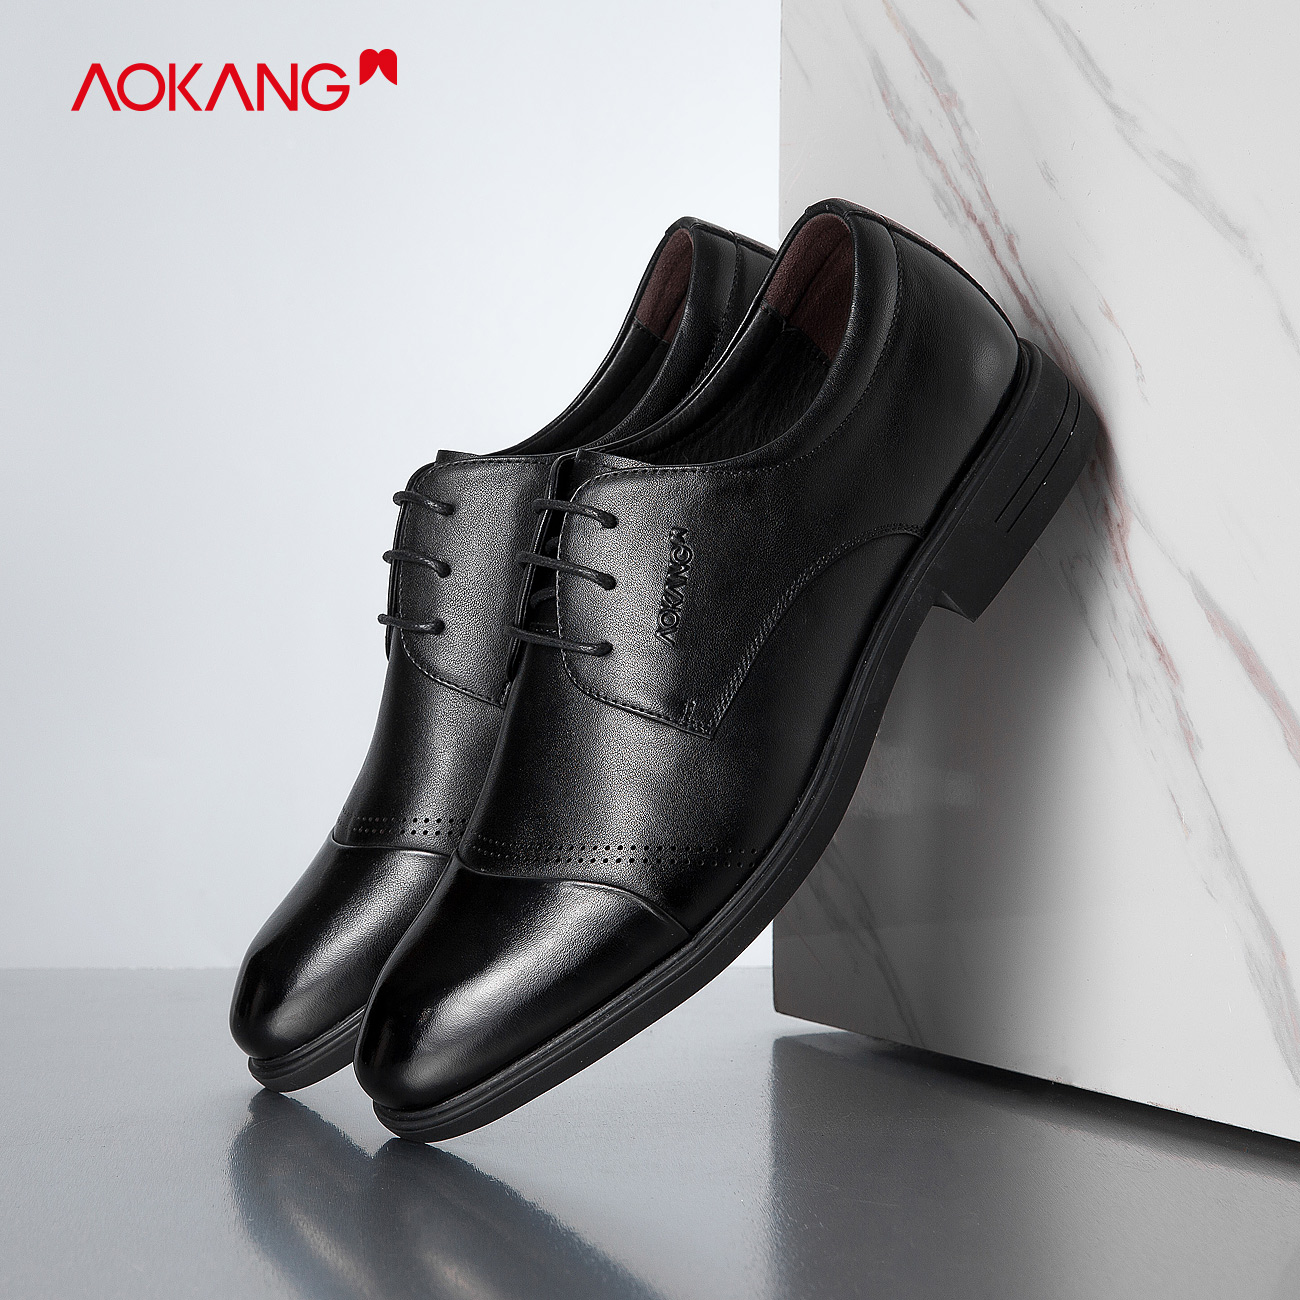 (Slip series) aokang men's shoes 2019 new autumn business suits office British breathable shoes